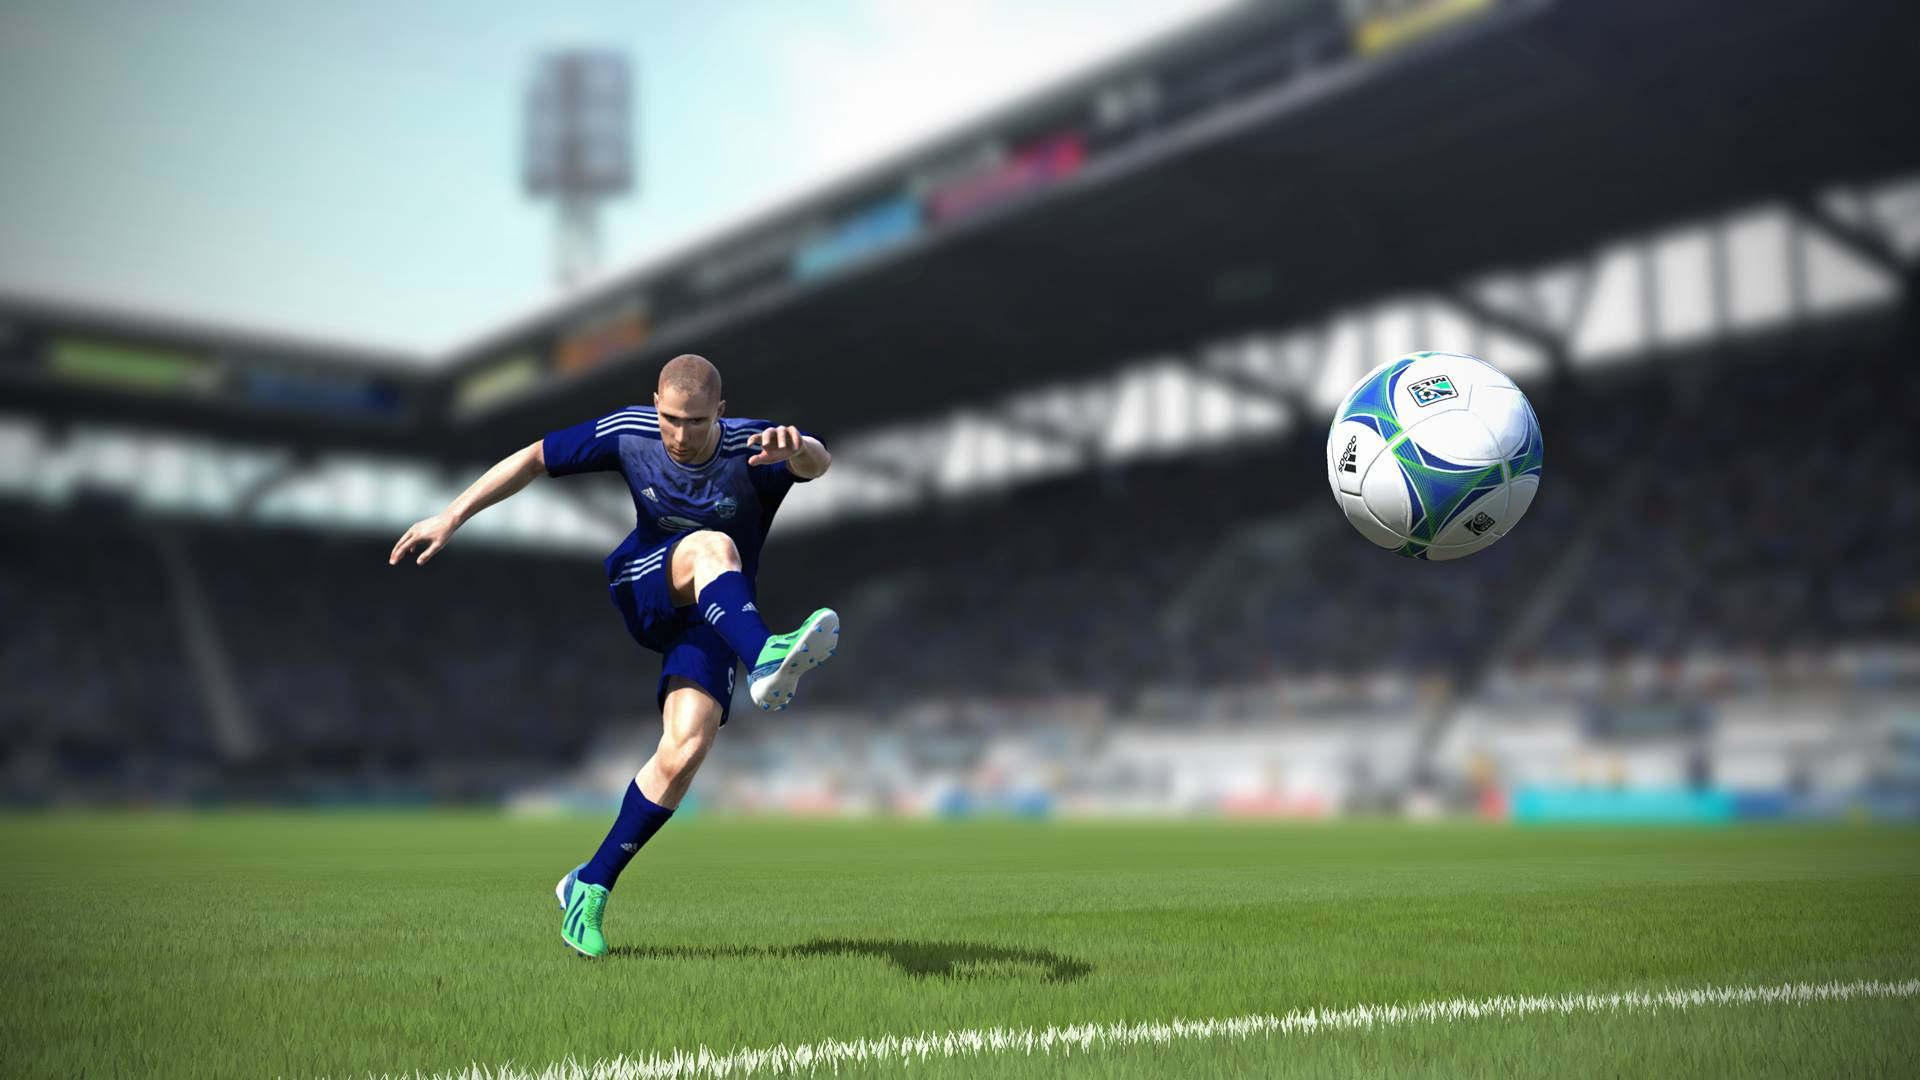 Fifa 14 full hd wallpaper and background image 1920x1080 id507707 video game fifa 14 wallpaper voltagebd Images